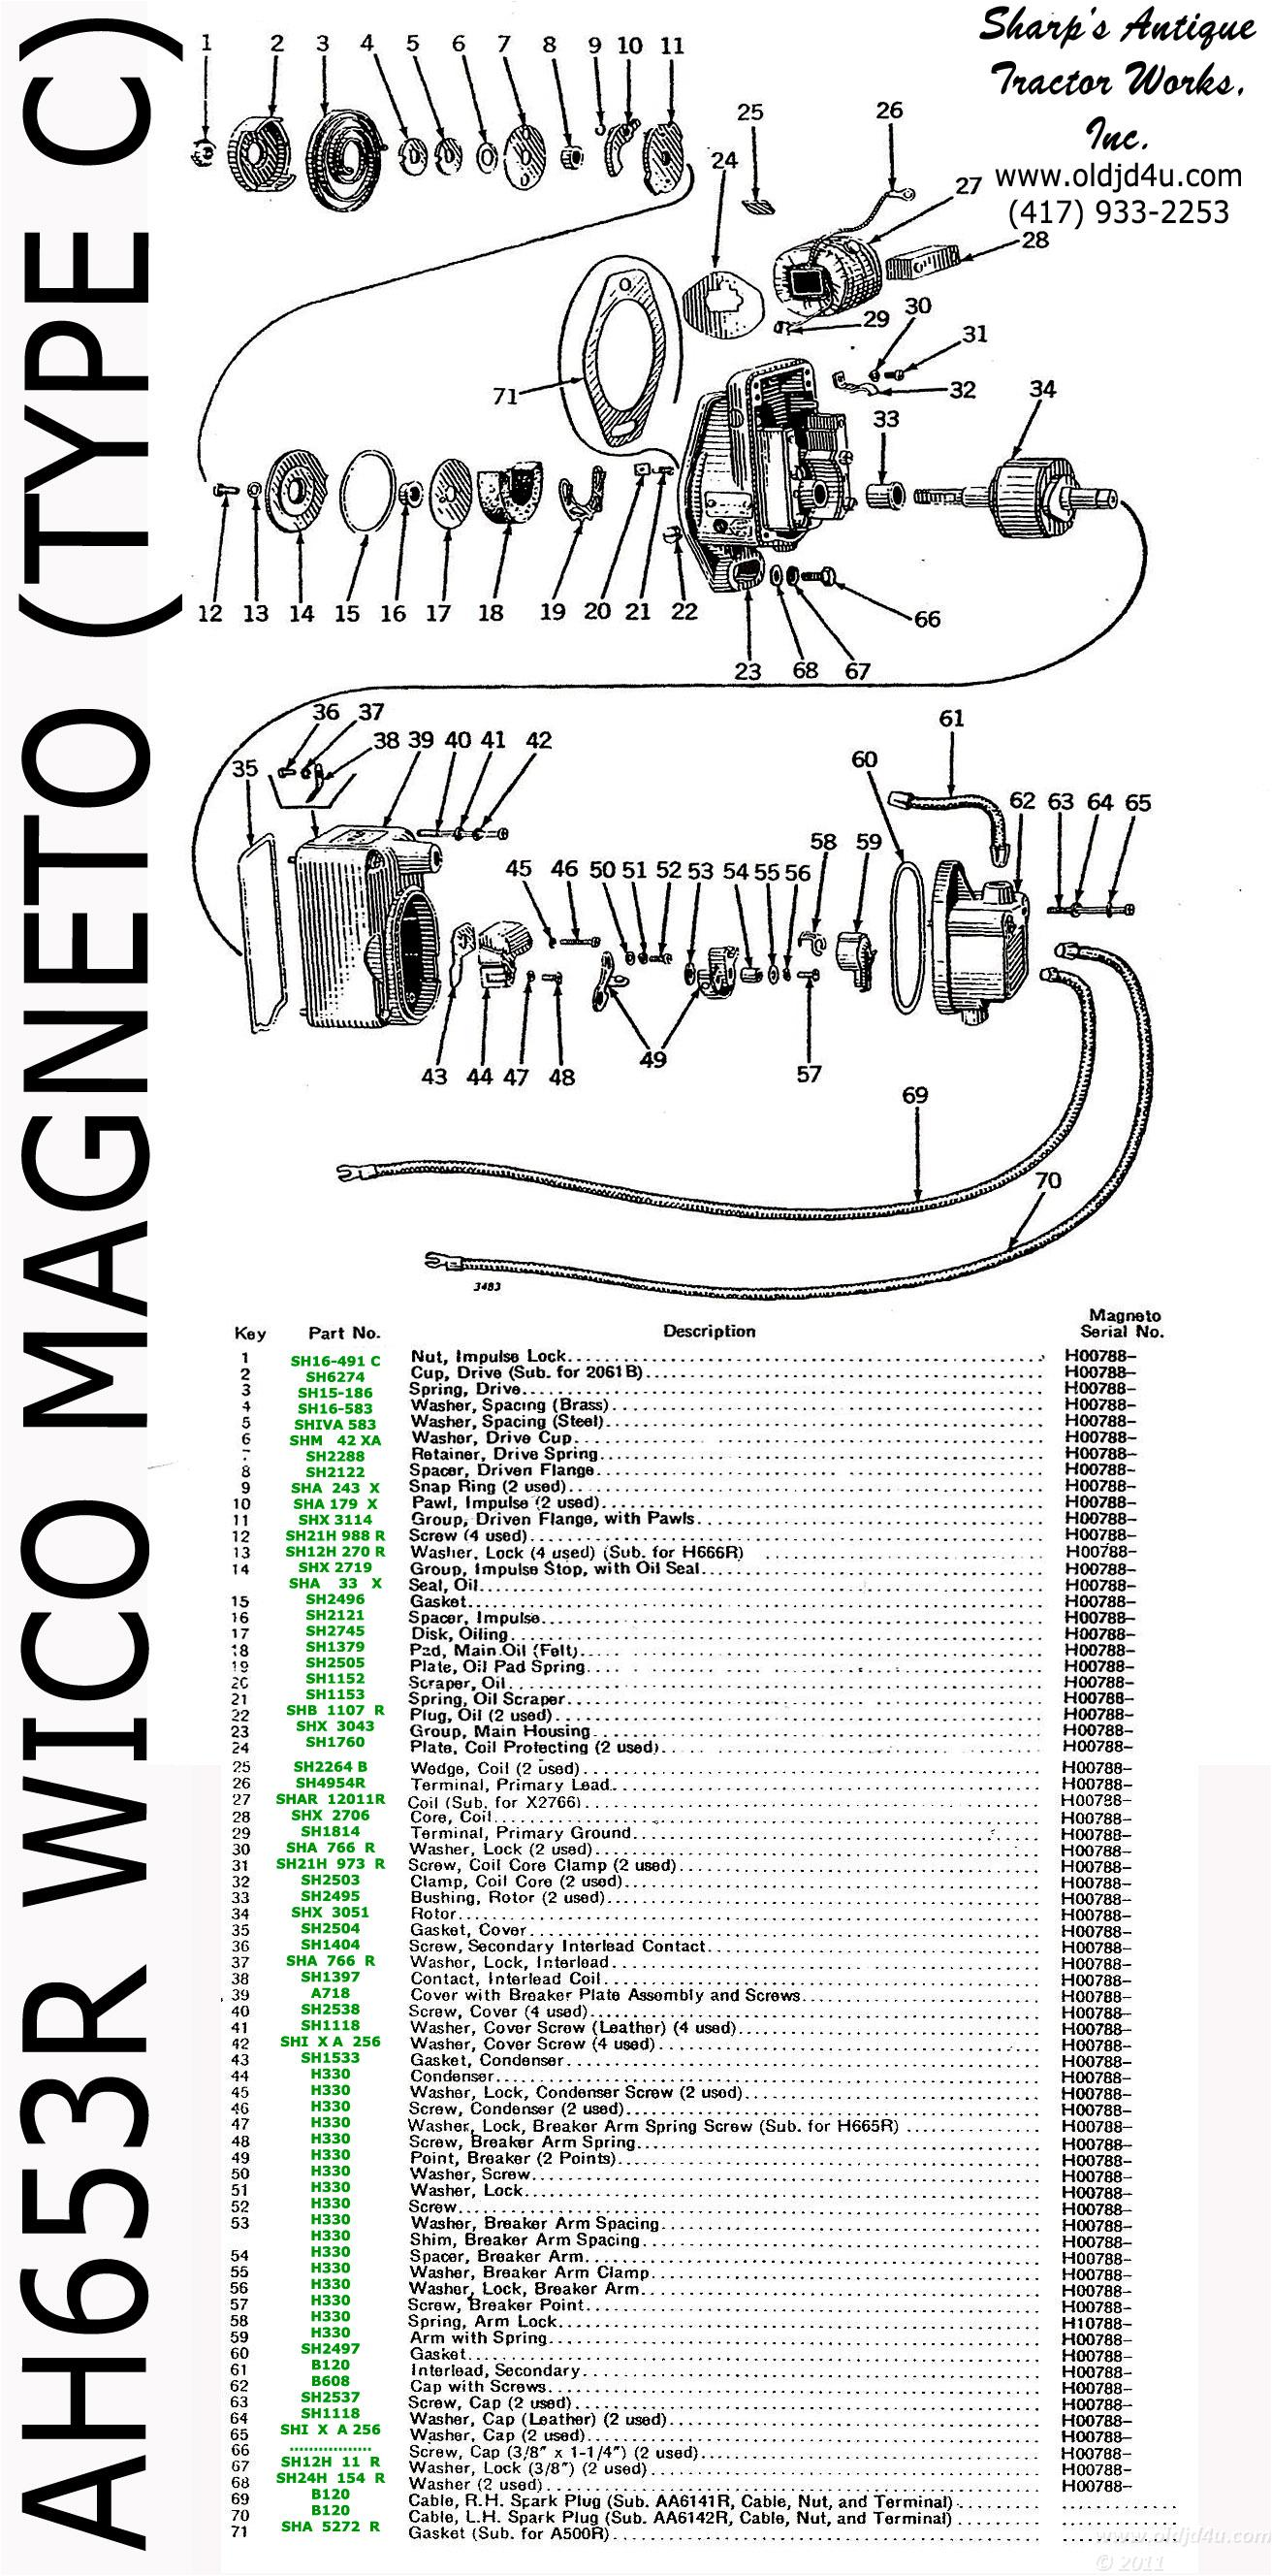 Wico Magneto Wiring Schematic Diagram Libraries Wilco Datawico Data John Deere